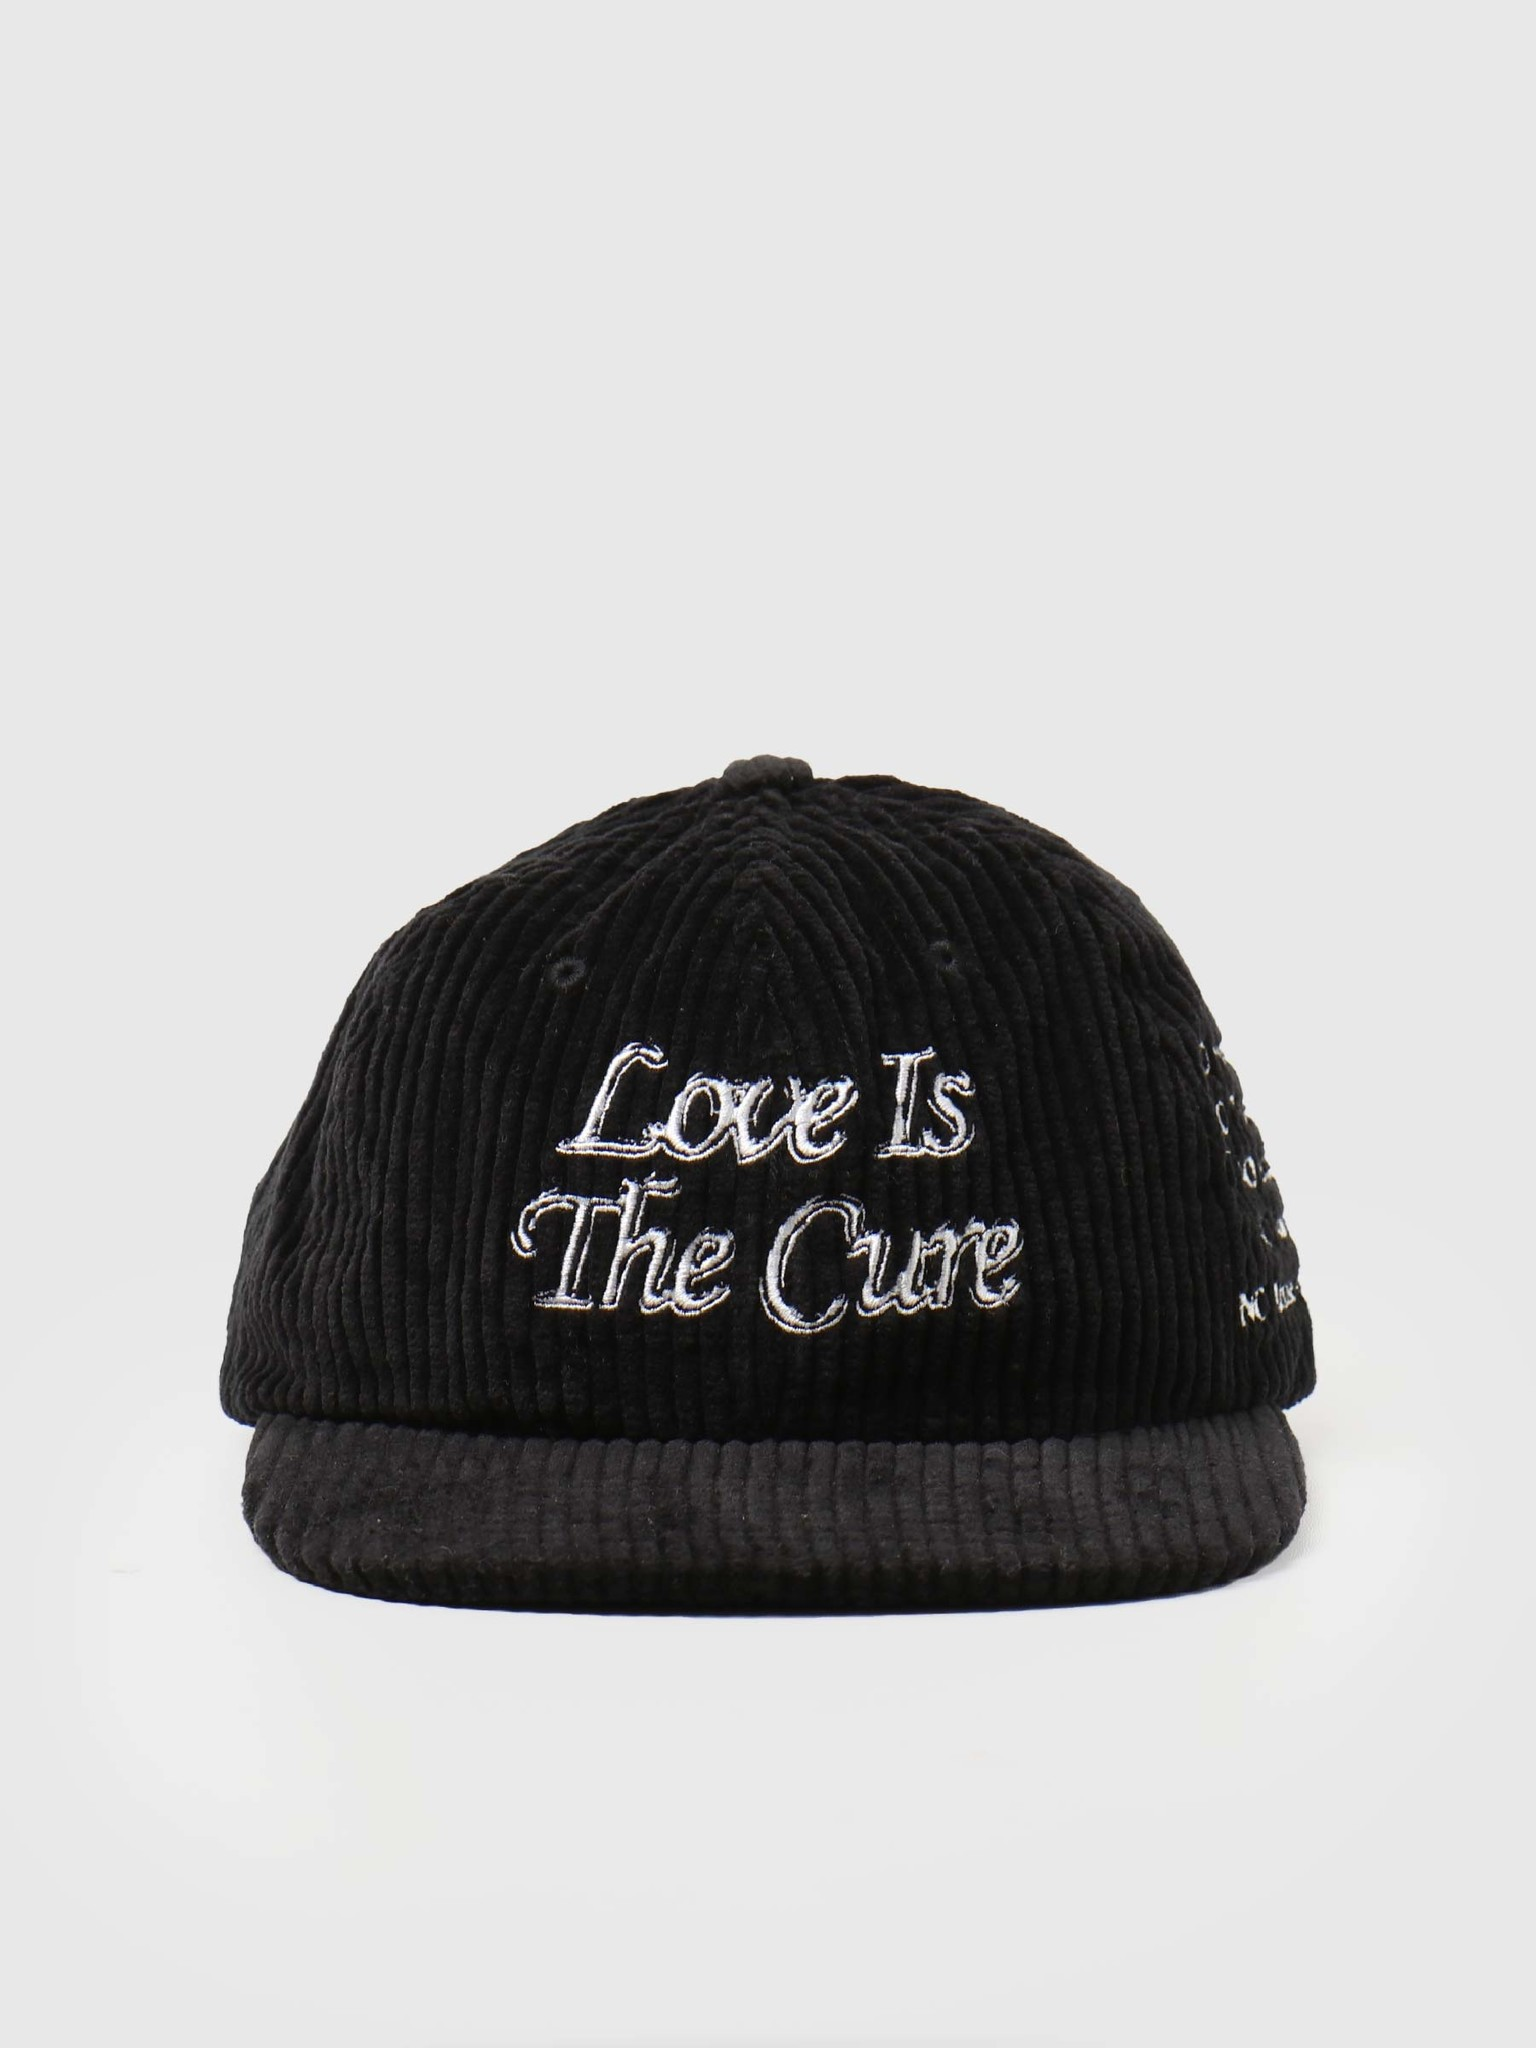 Obey Obey The Cure 6 Panel Strapback Black 100580280-BLK